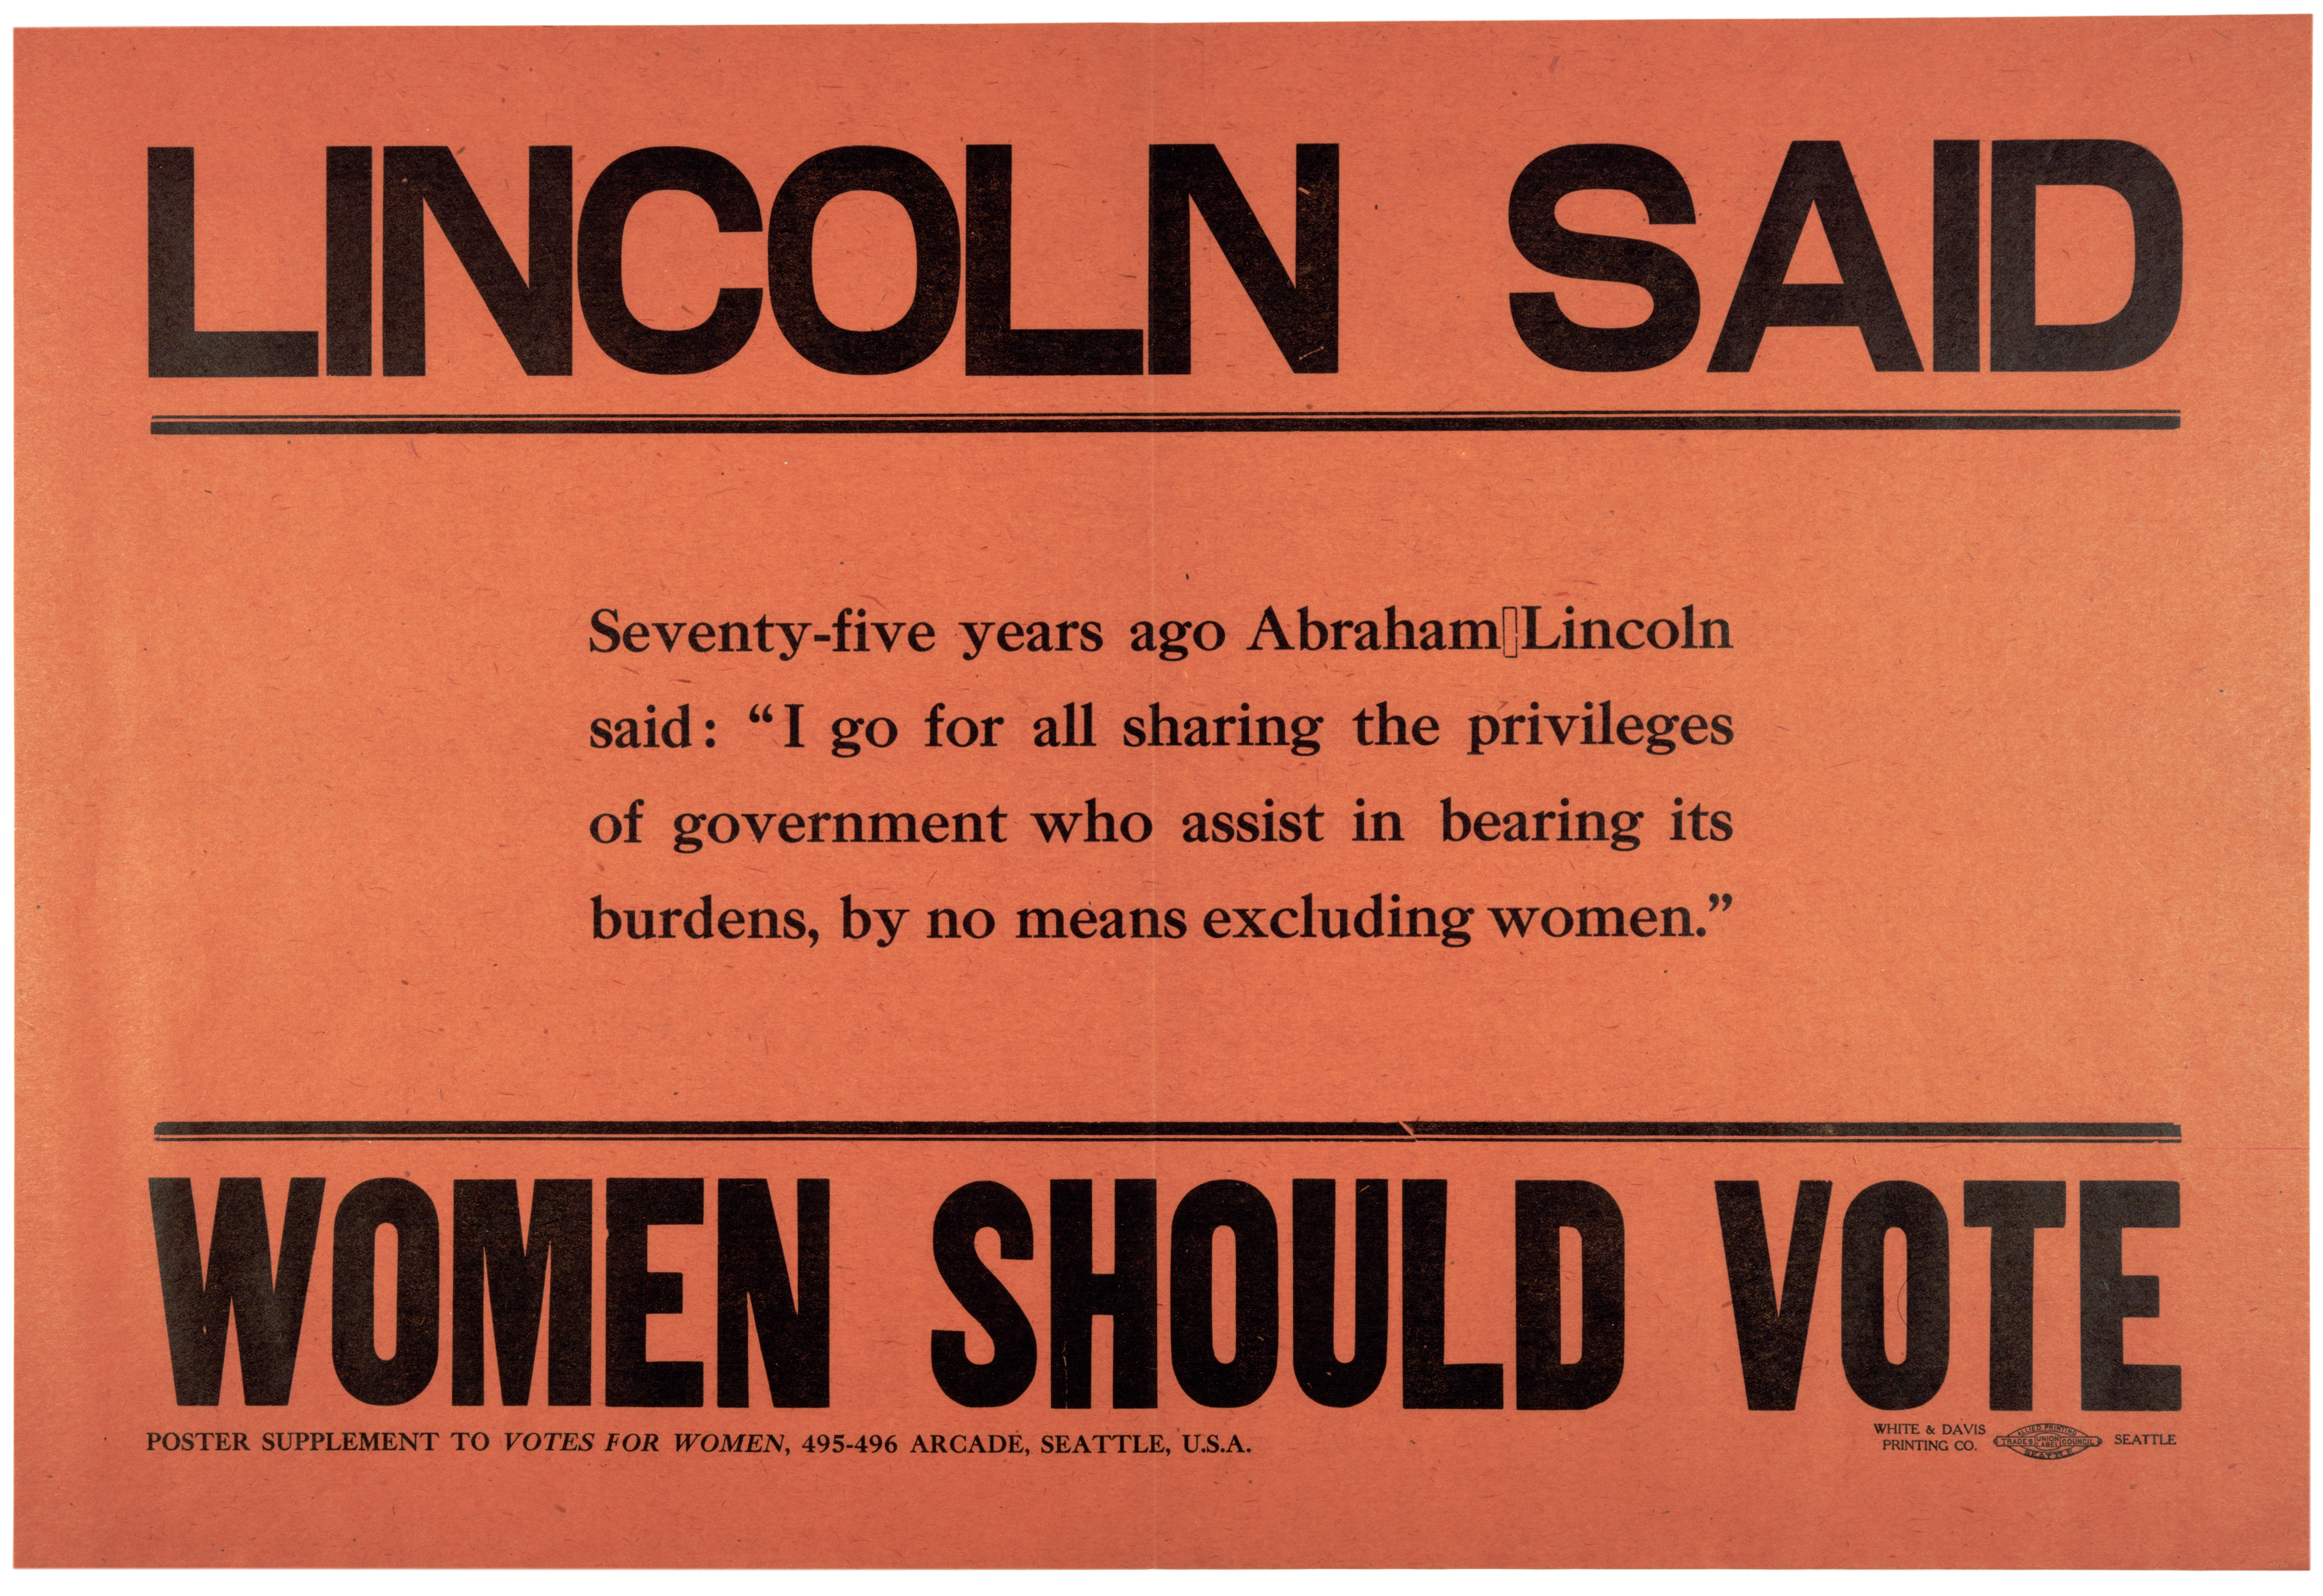 Lincoln Said Women Should Vote, ca. 1910 (GLC09103)